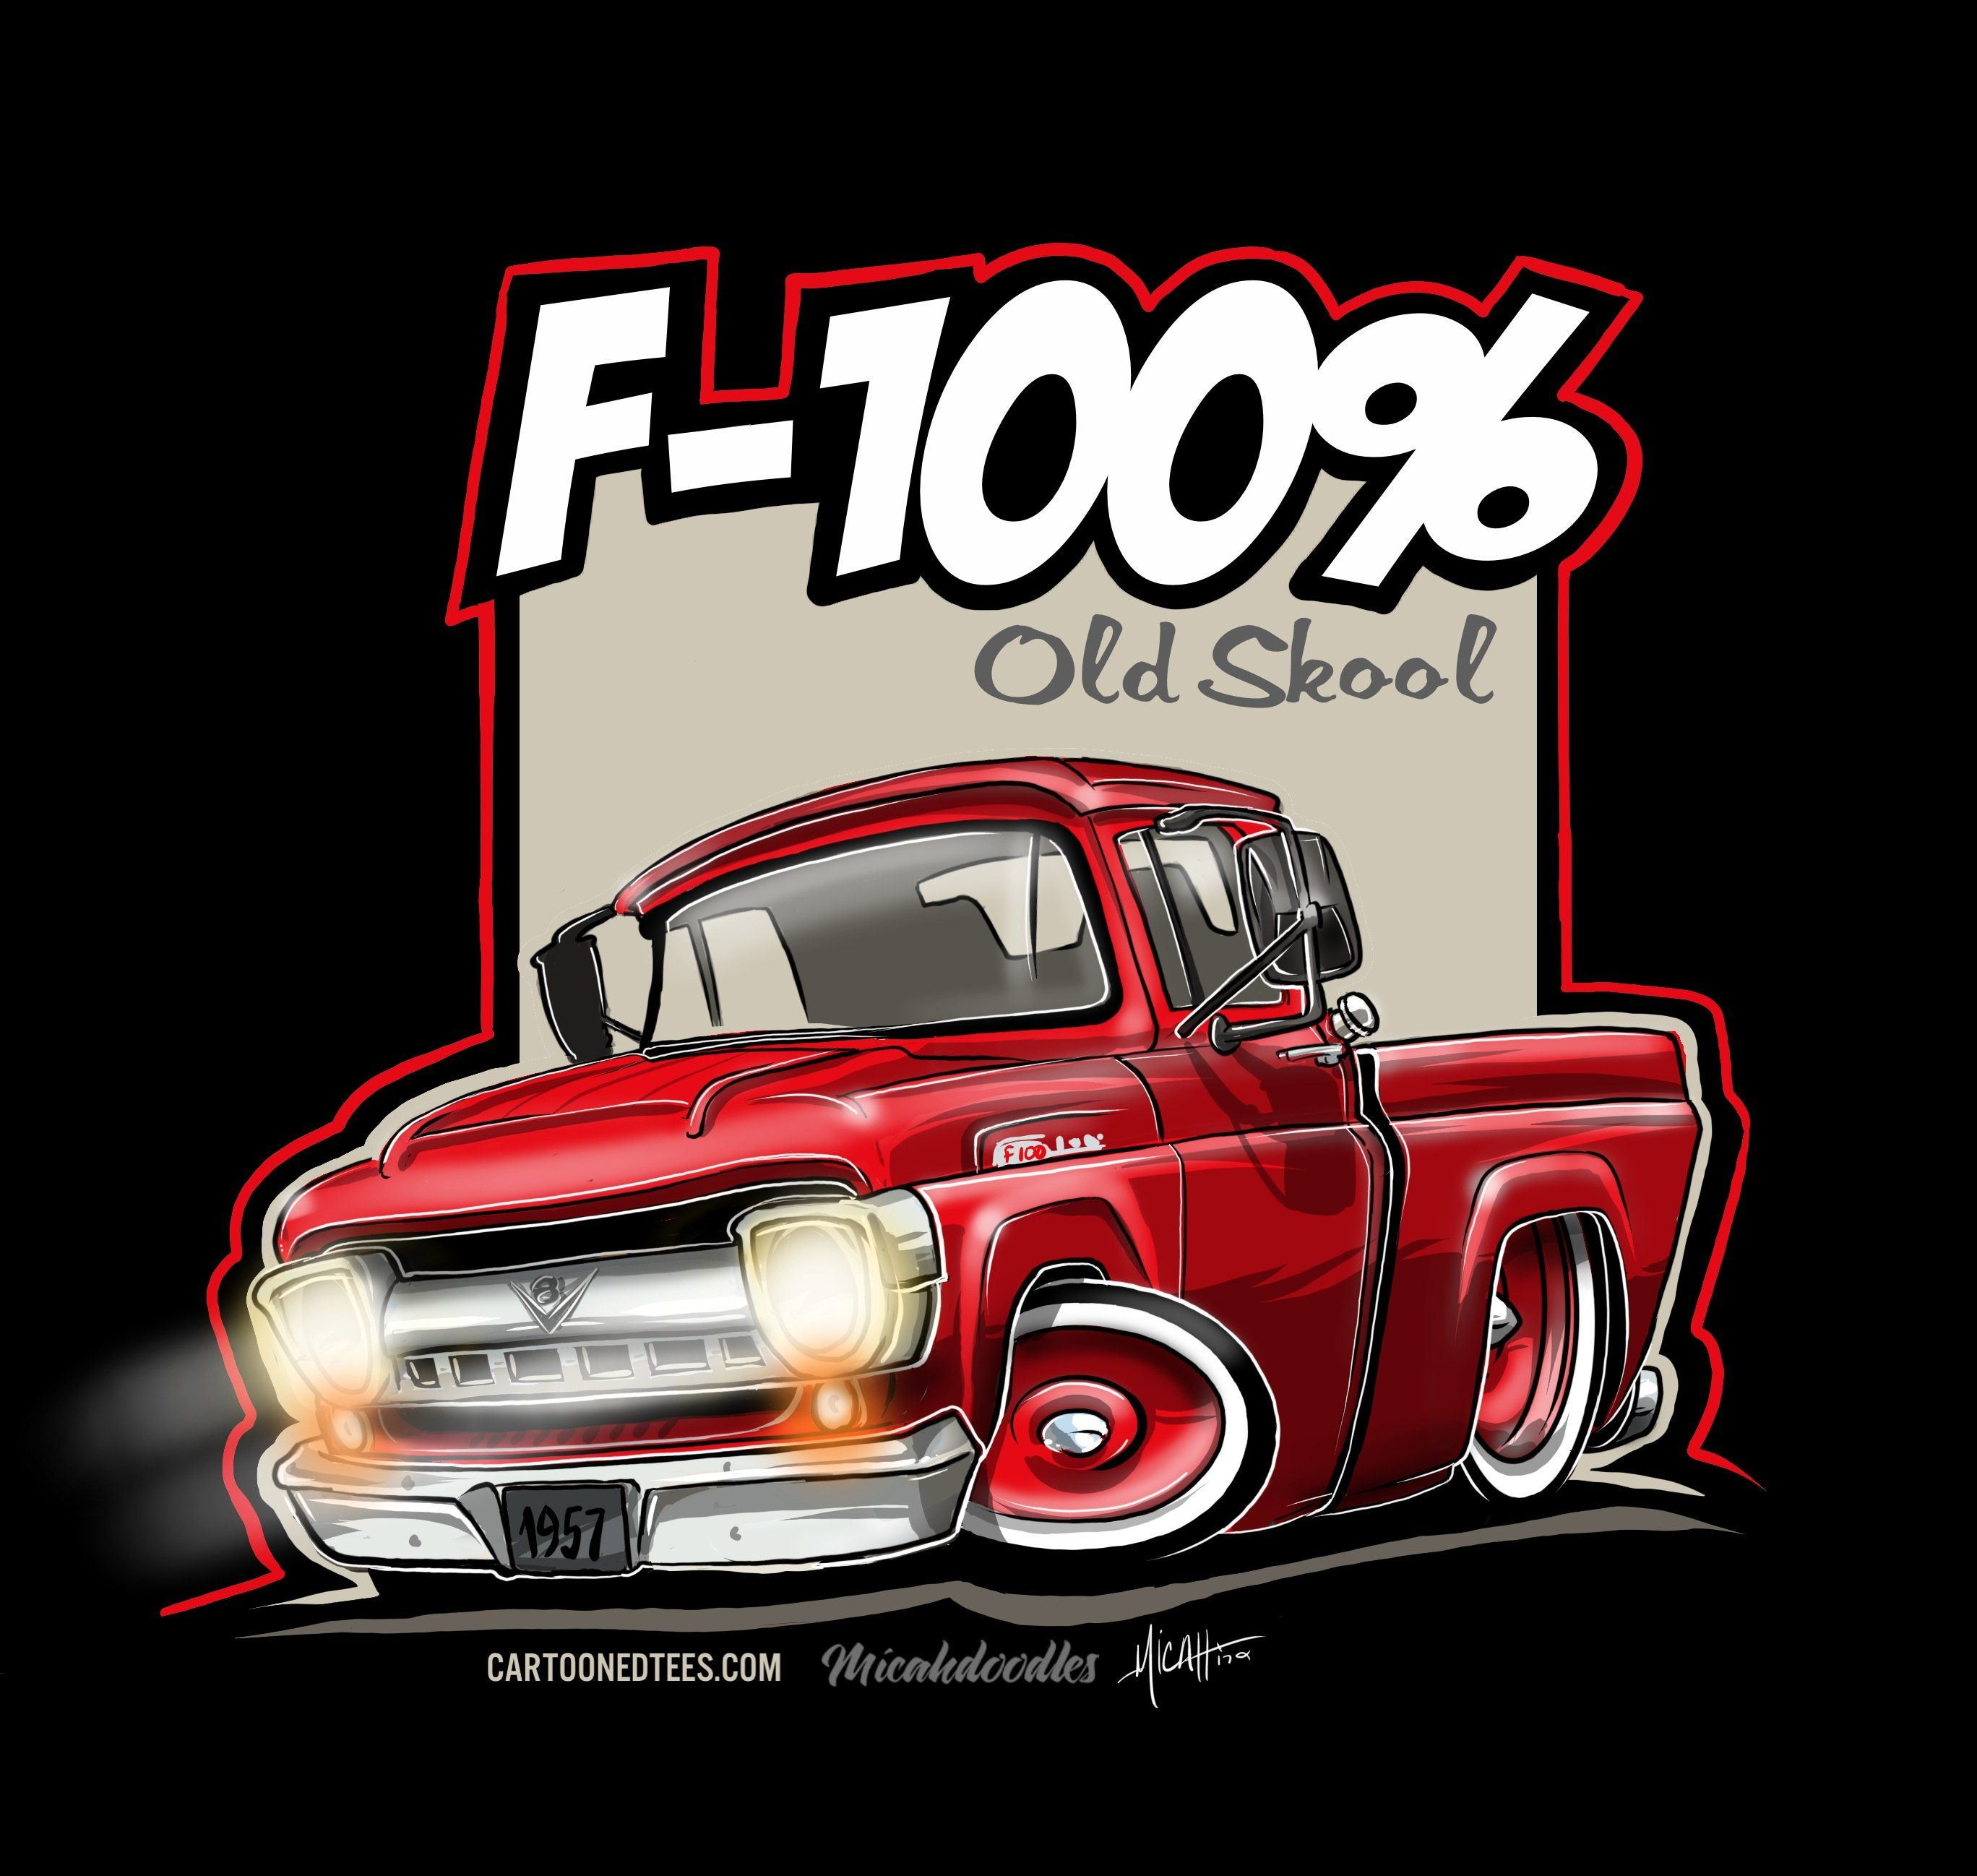 CARTOONEDTEES — \'57 F100% Fleetside Red.